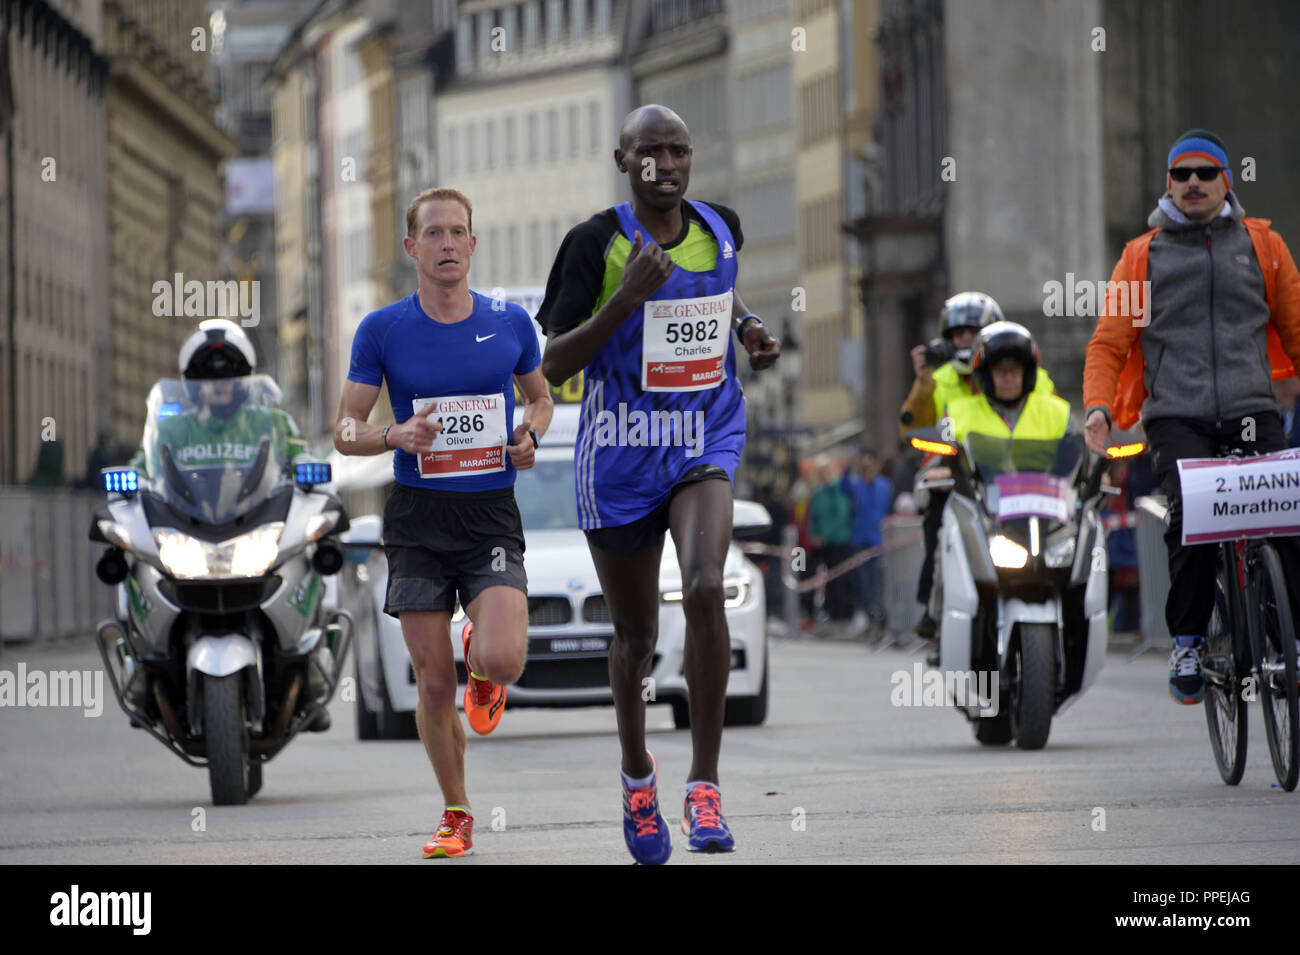 The later winner Oliver Herrmann (left) with his Kenyan pacemaker Charles Korir on the course at the 31st Munich Marathon. - Stock Image